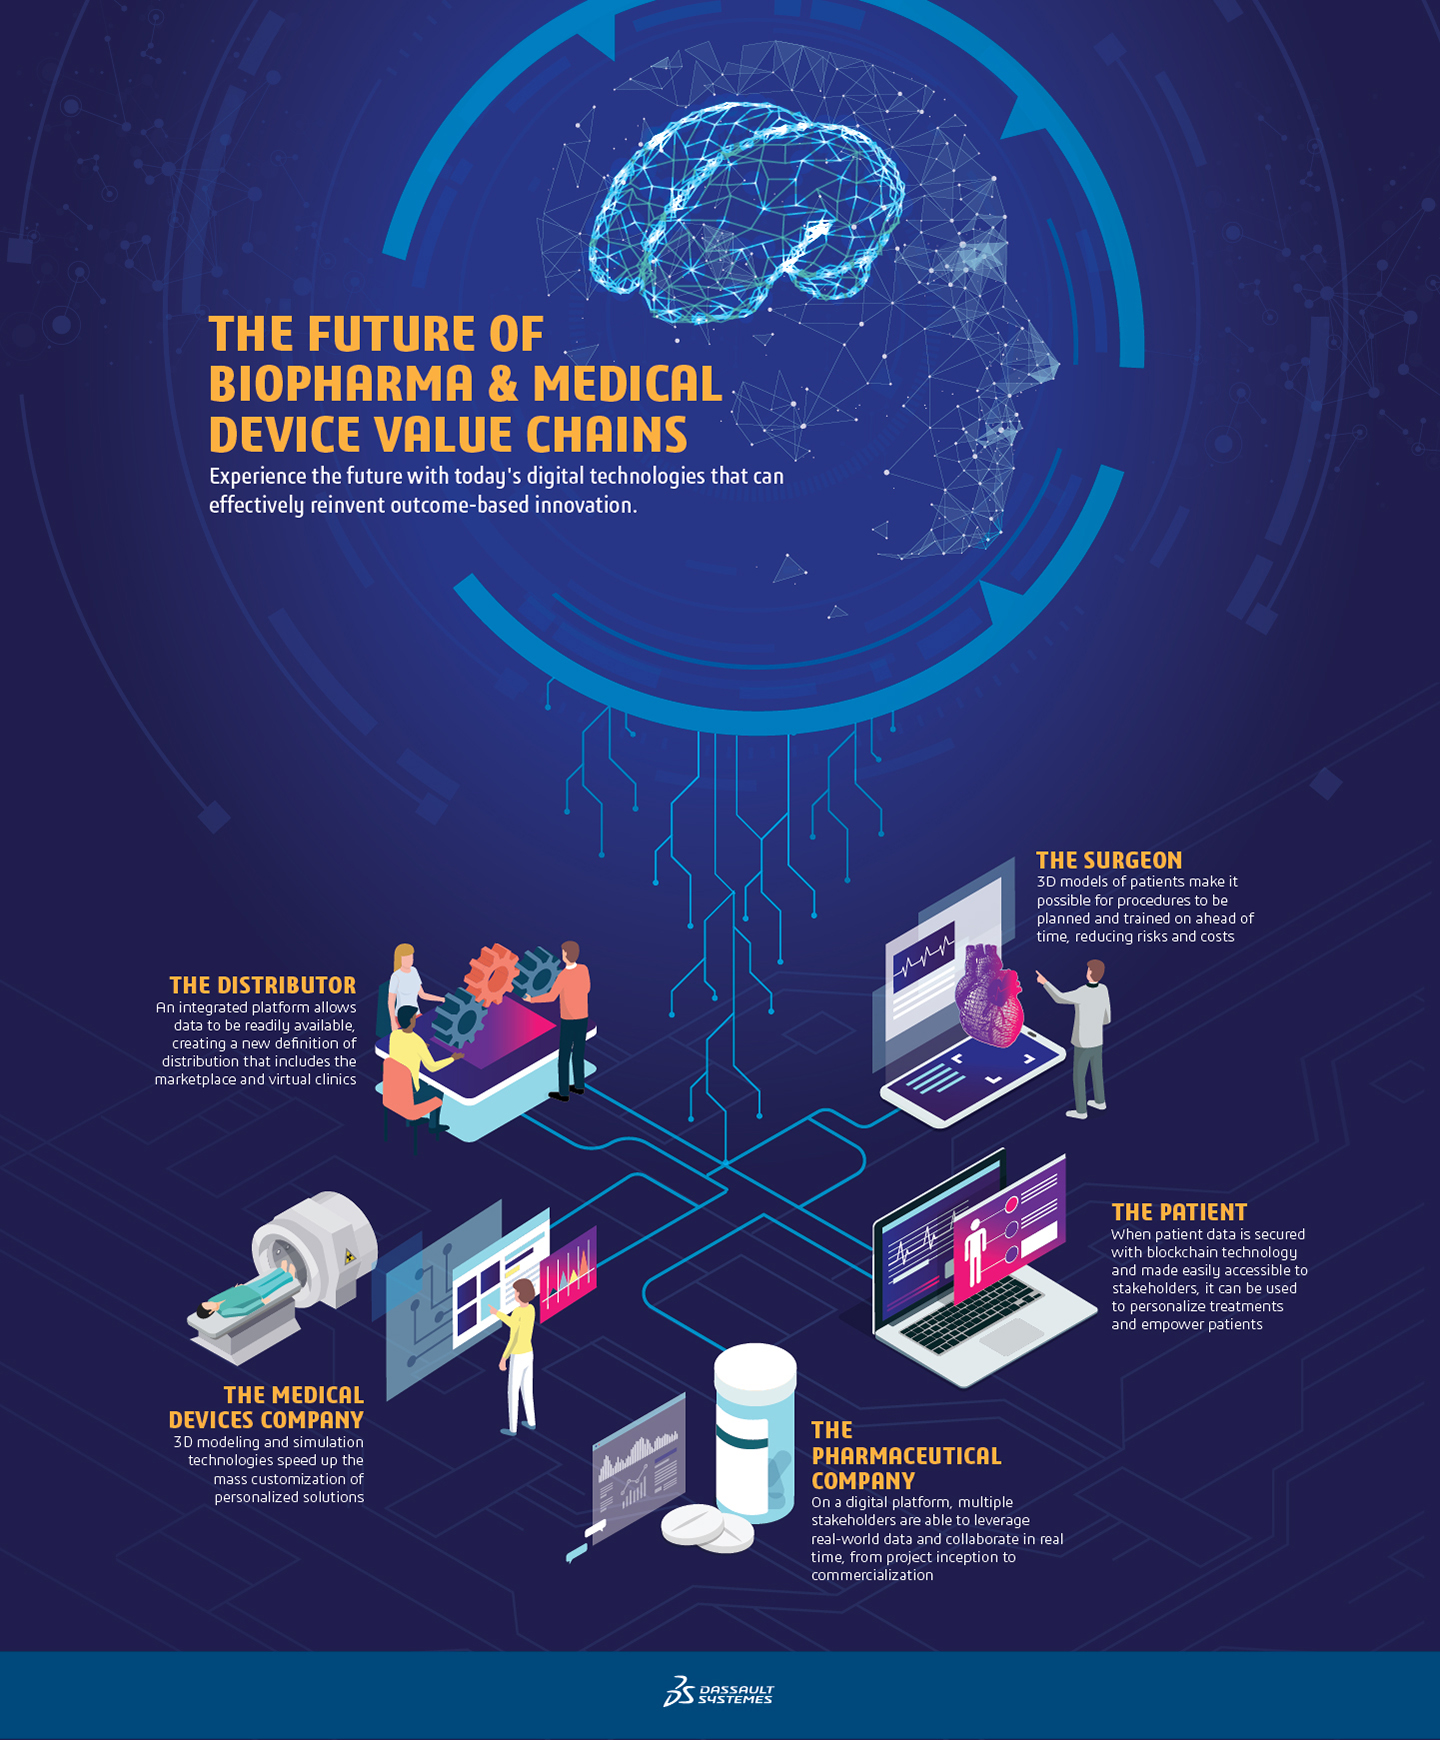 The Connected Value Chain > Biopharma & Medical Device Value Chains of the Future > Dassault Systèmes